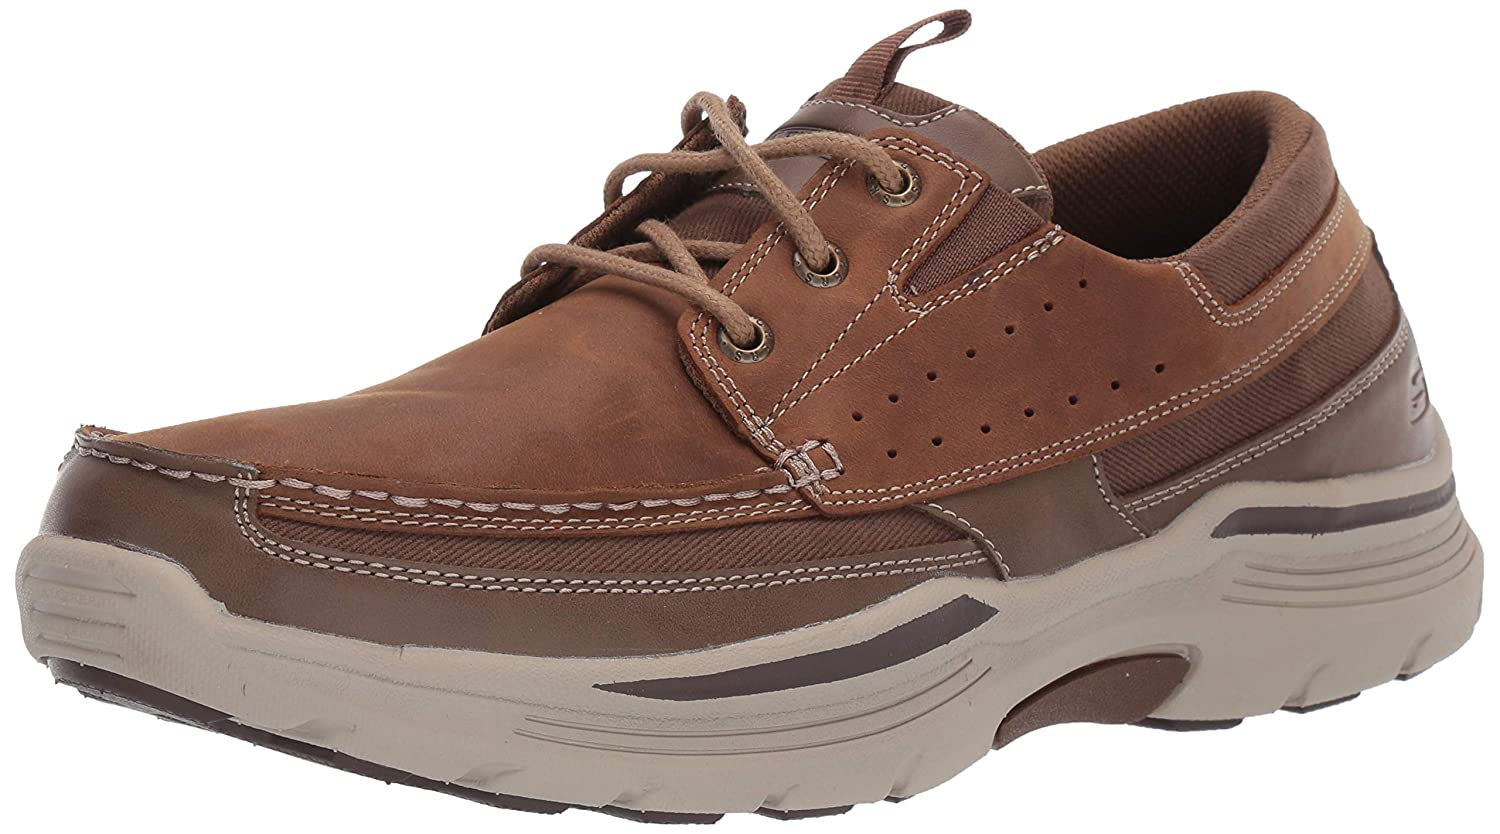 Skechers Men's Expended menson Leather Lace Up Boat Shoe